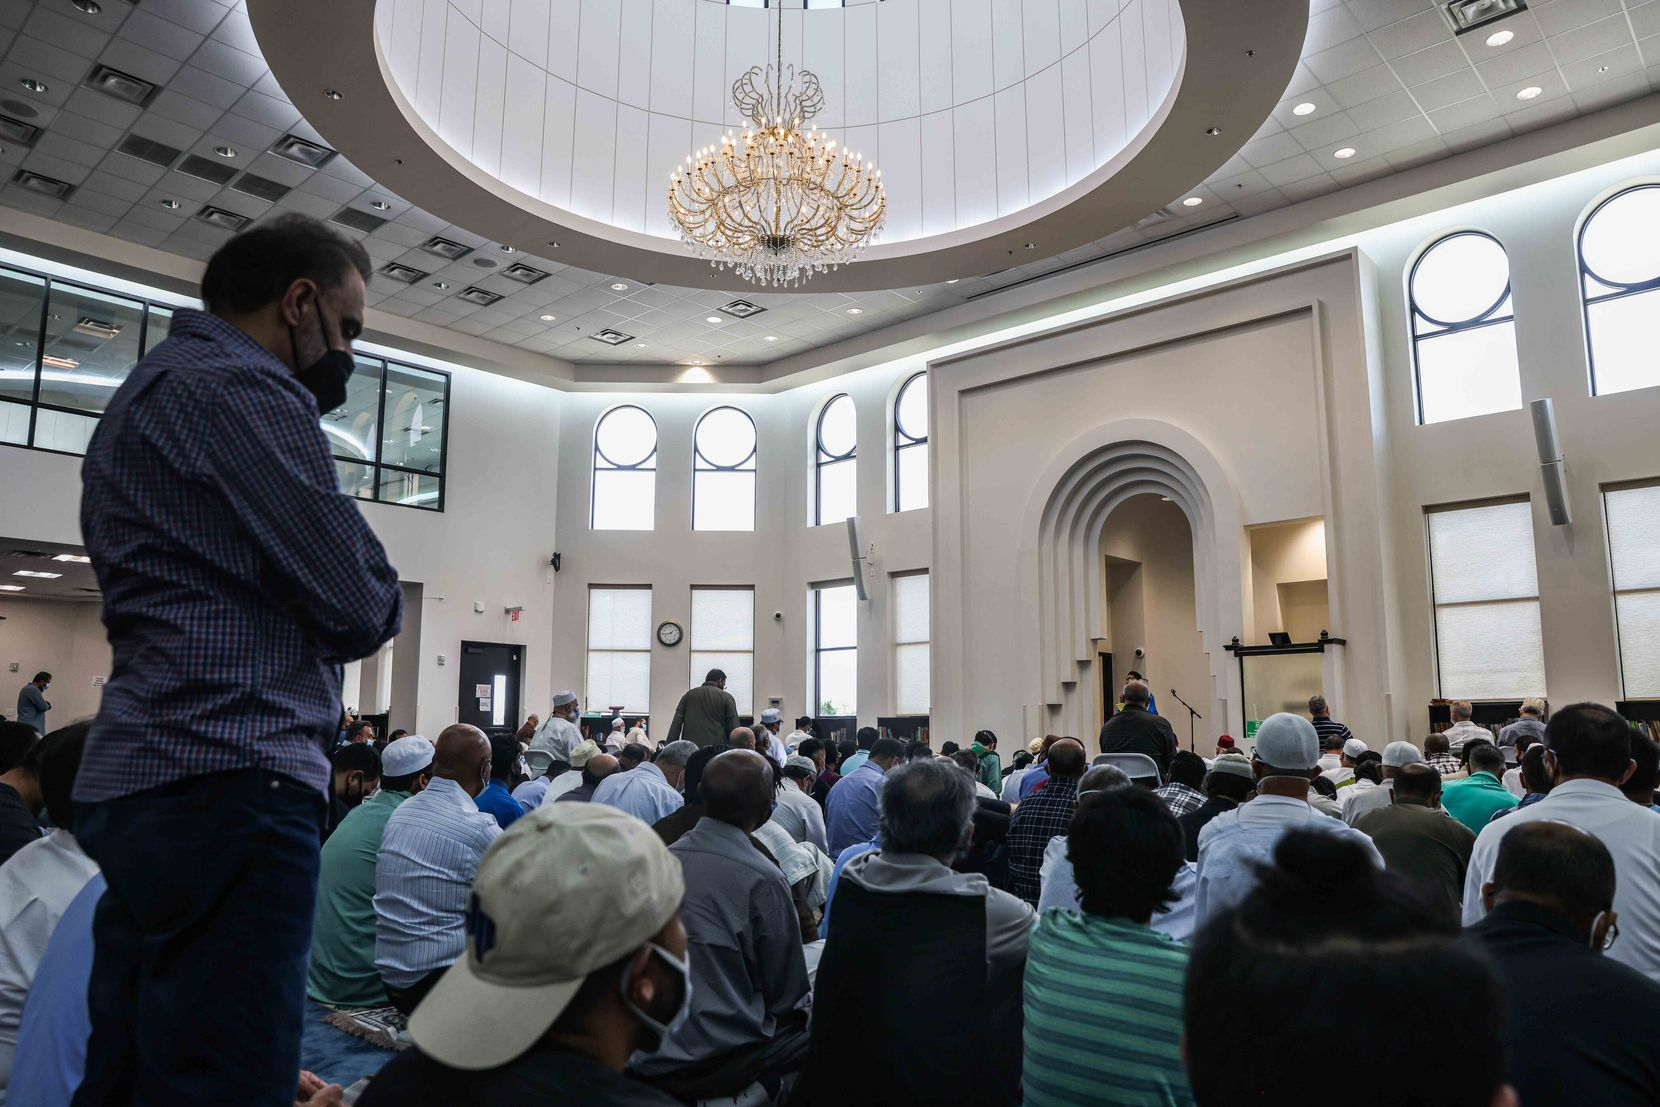 Dozens of Muslim men listened to a lecture in the main prayer hall of the East Plano Islamic Center before their afternoon prayers on Aug. 27, 2021.